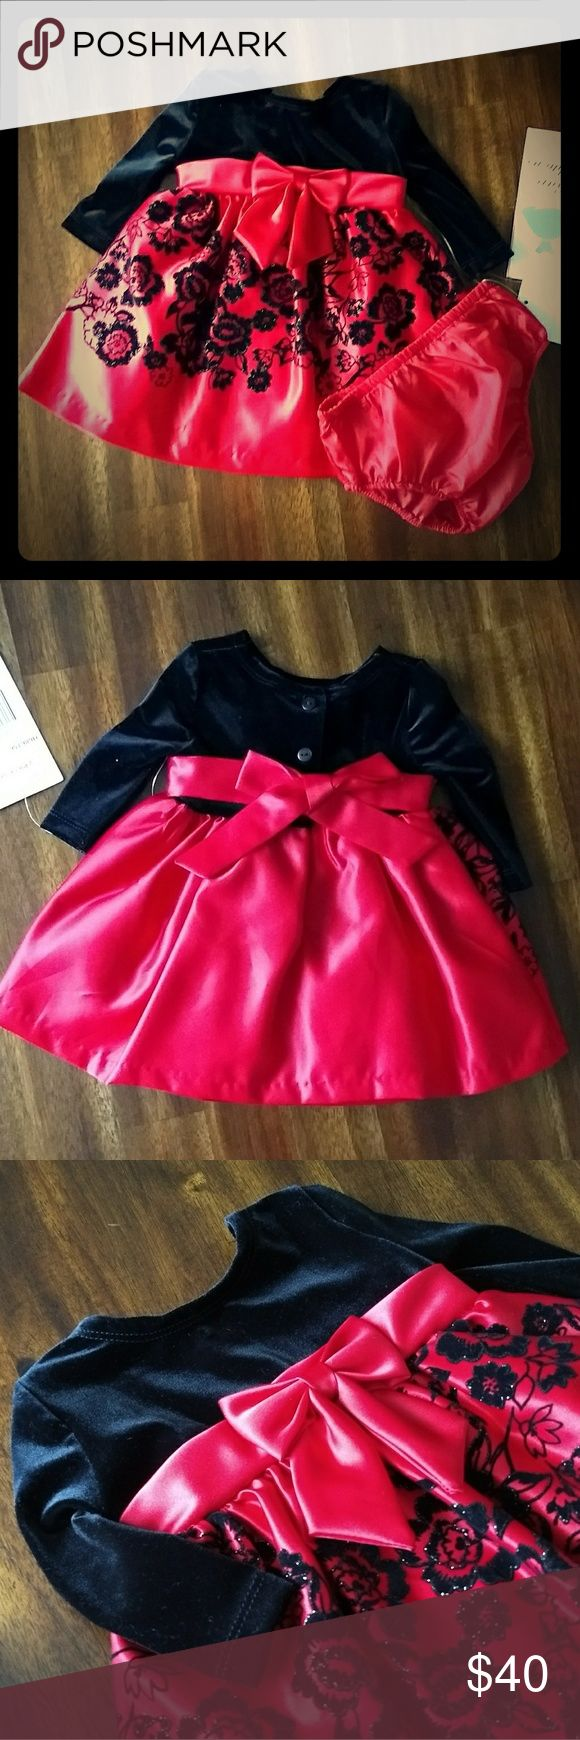 Baby Girl Holiday Dress NWT. Beautiful dress has velour top and 3 layer satin skirt with velvet & glitter floral detail. Includes matching bloomers. Rare Editions Dresses Formal